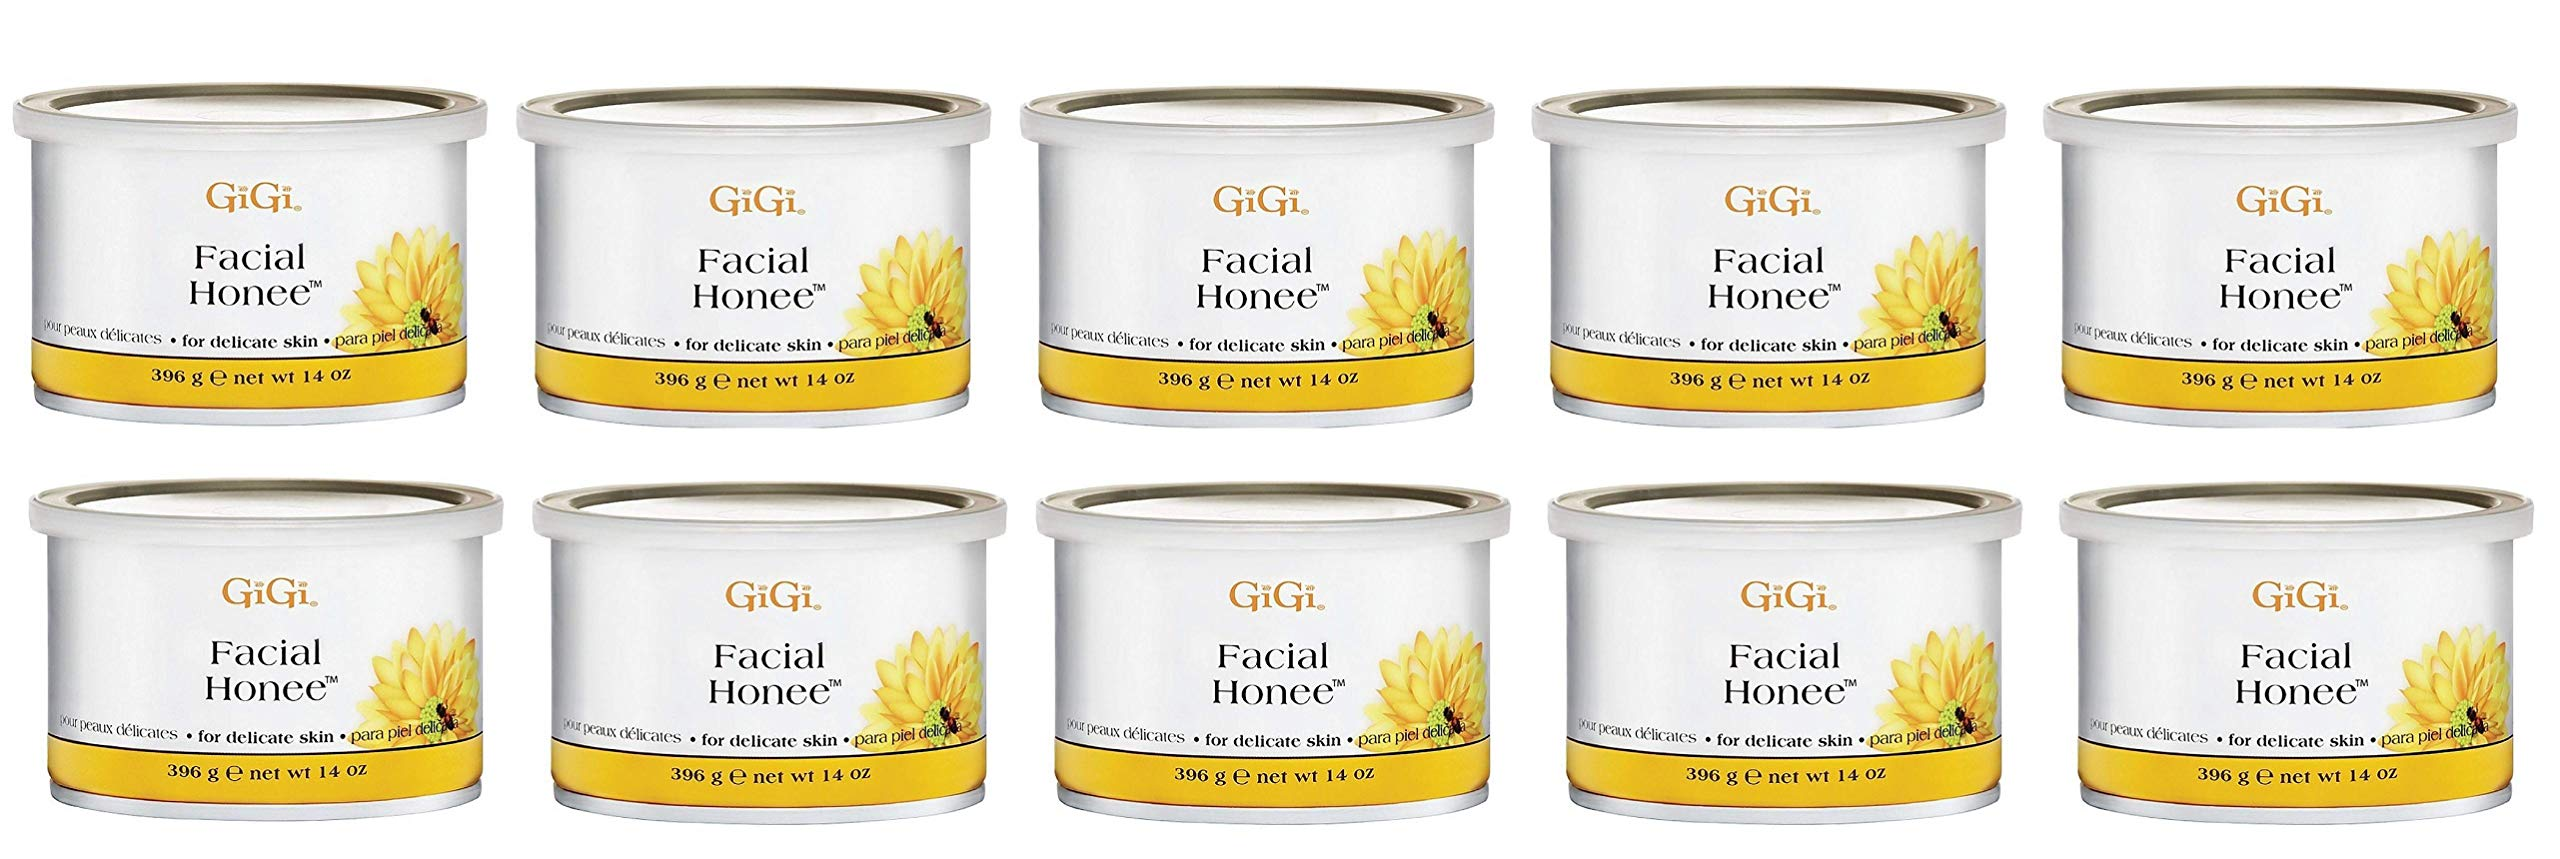 GiGi Facial Honee Wax 14 oz (Pack of 10) by GiGi